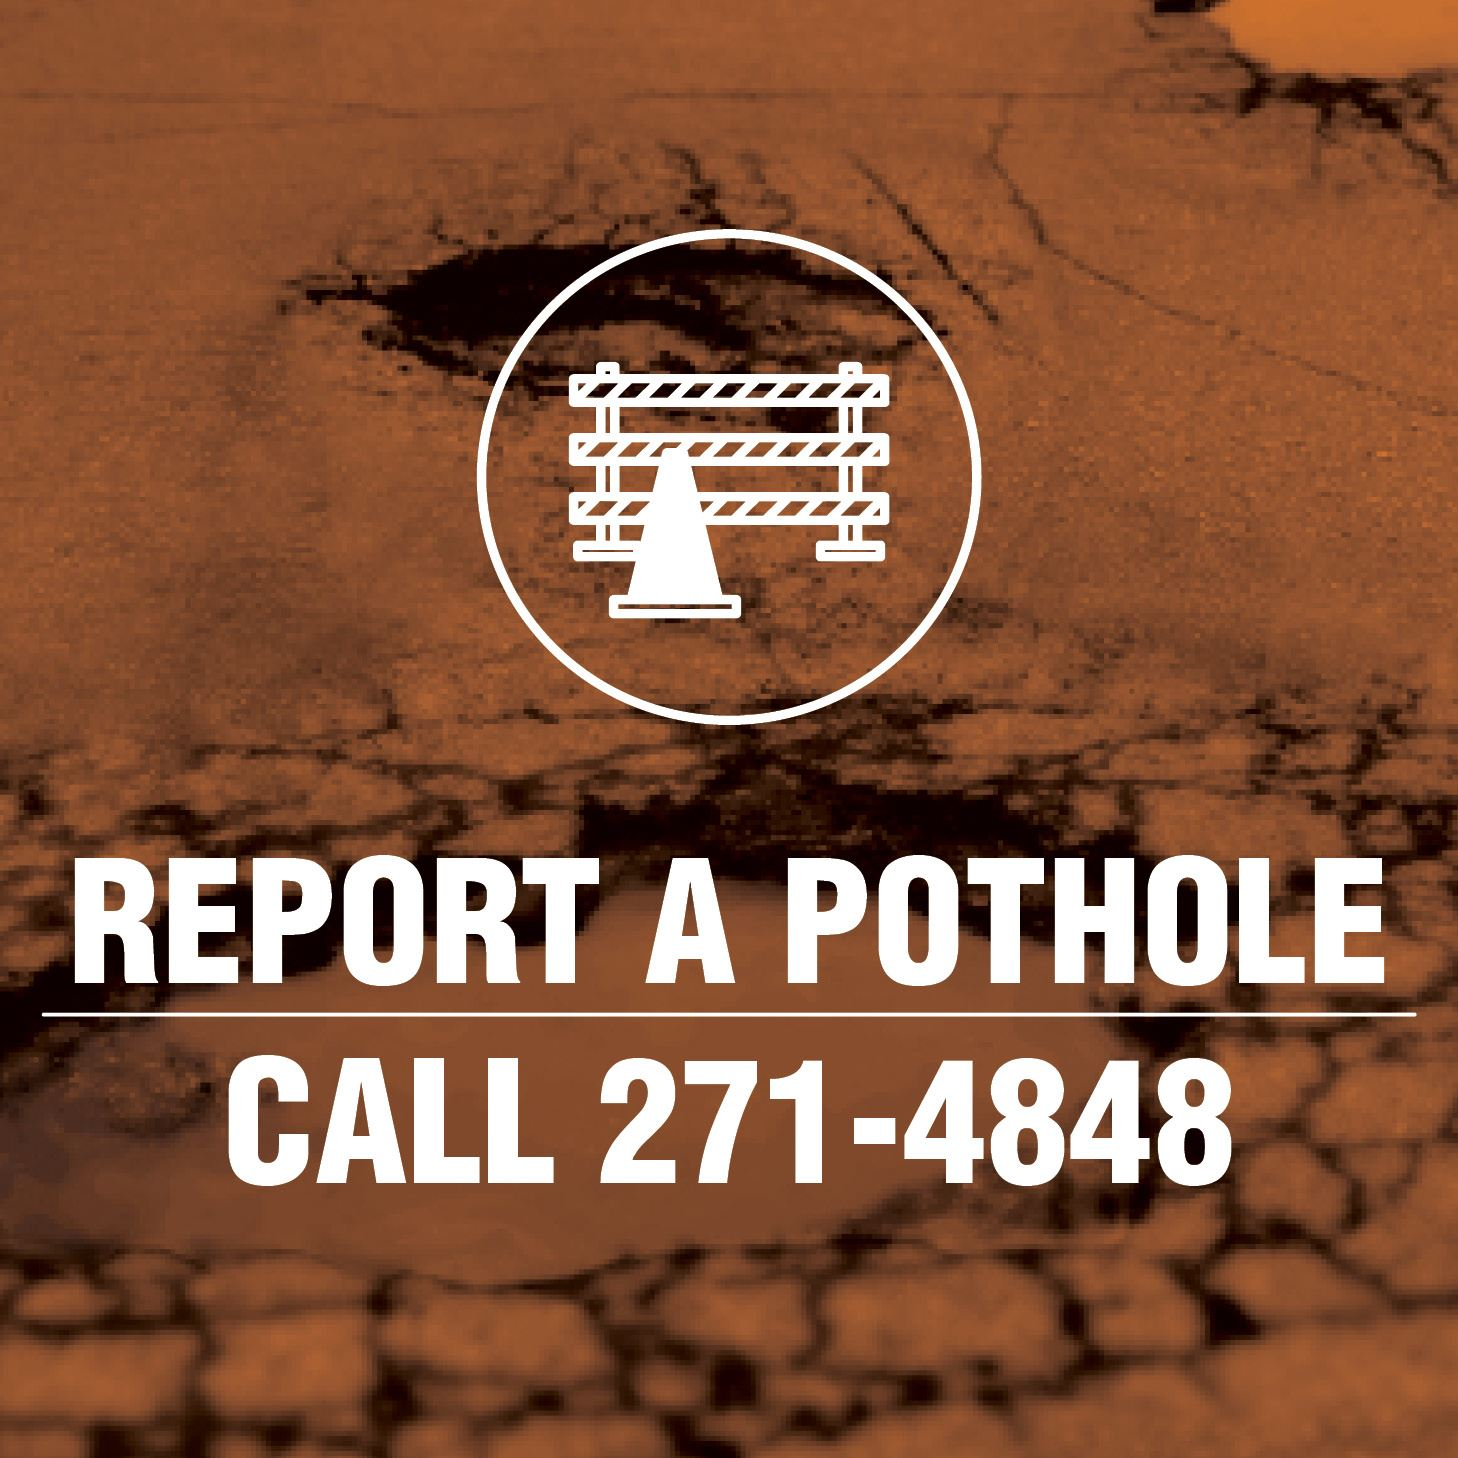 Pothole Reporting